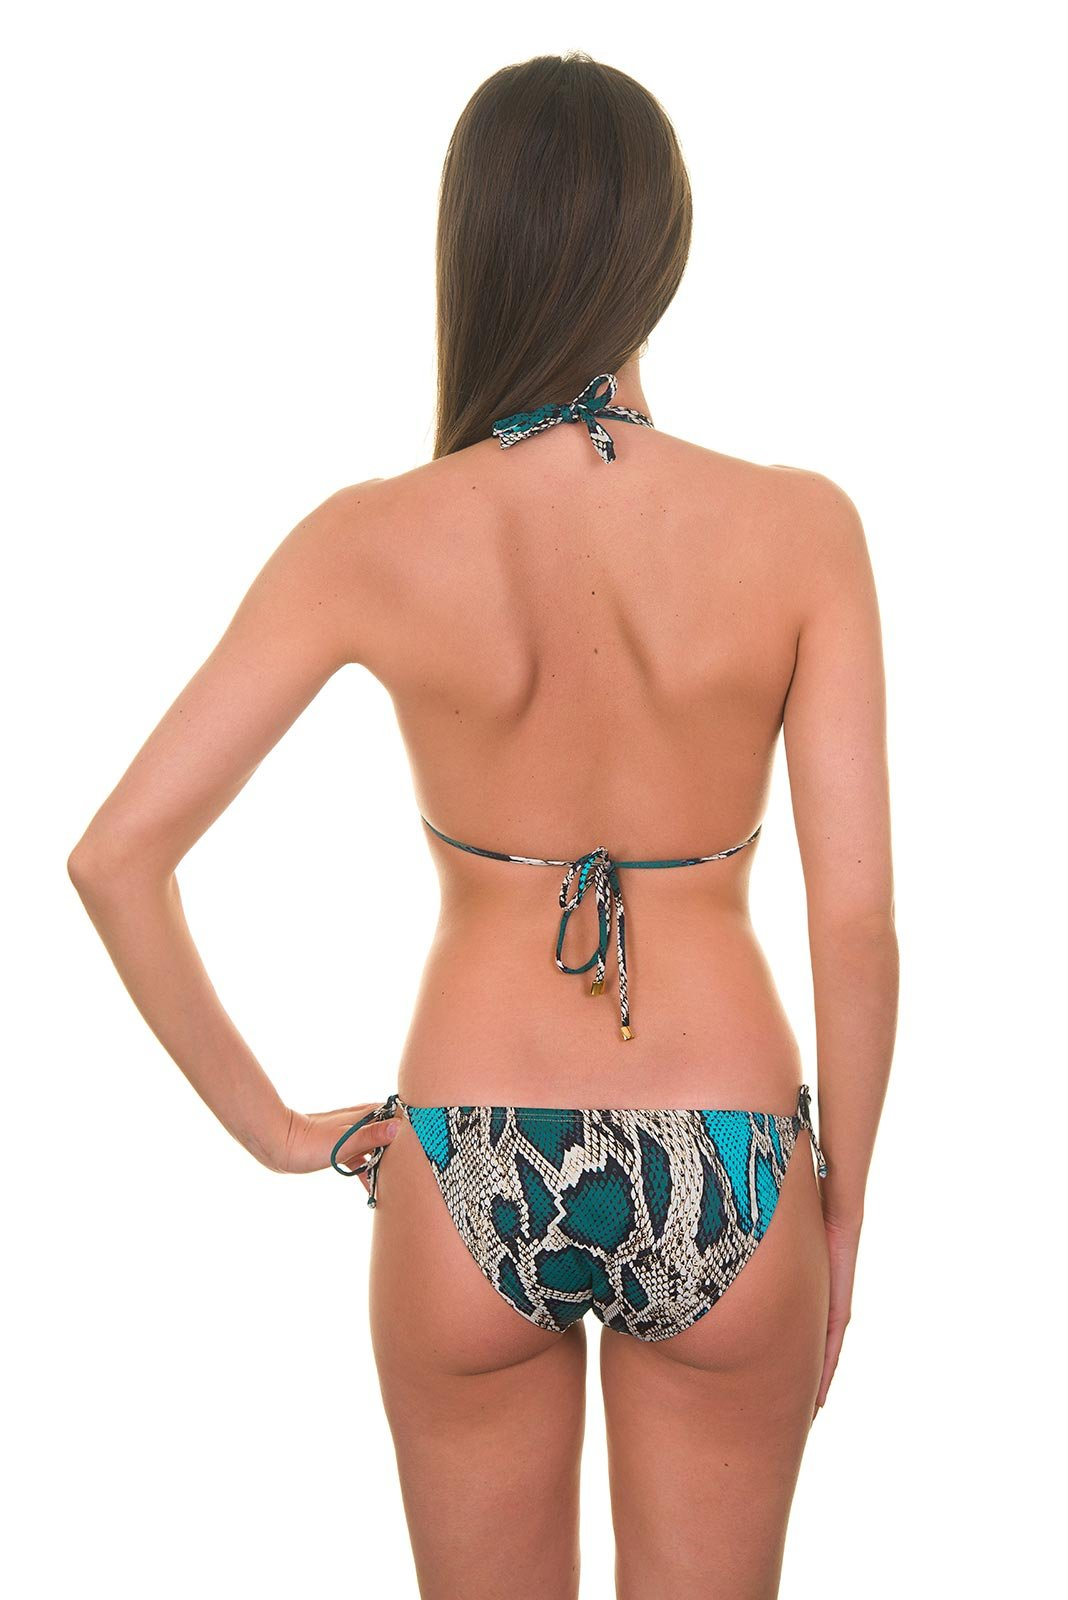 Luxury Snakeskin Print Trikini Gold Sequins Madre Selva One Piece